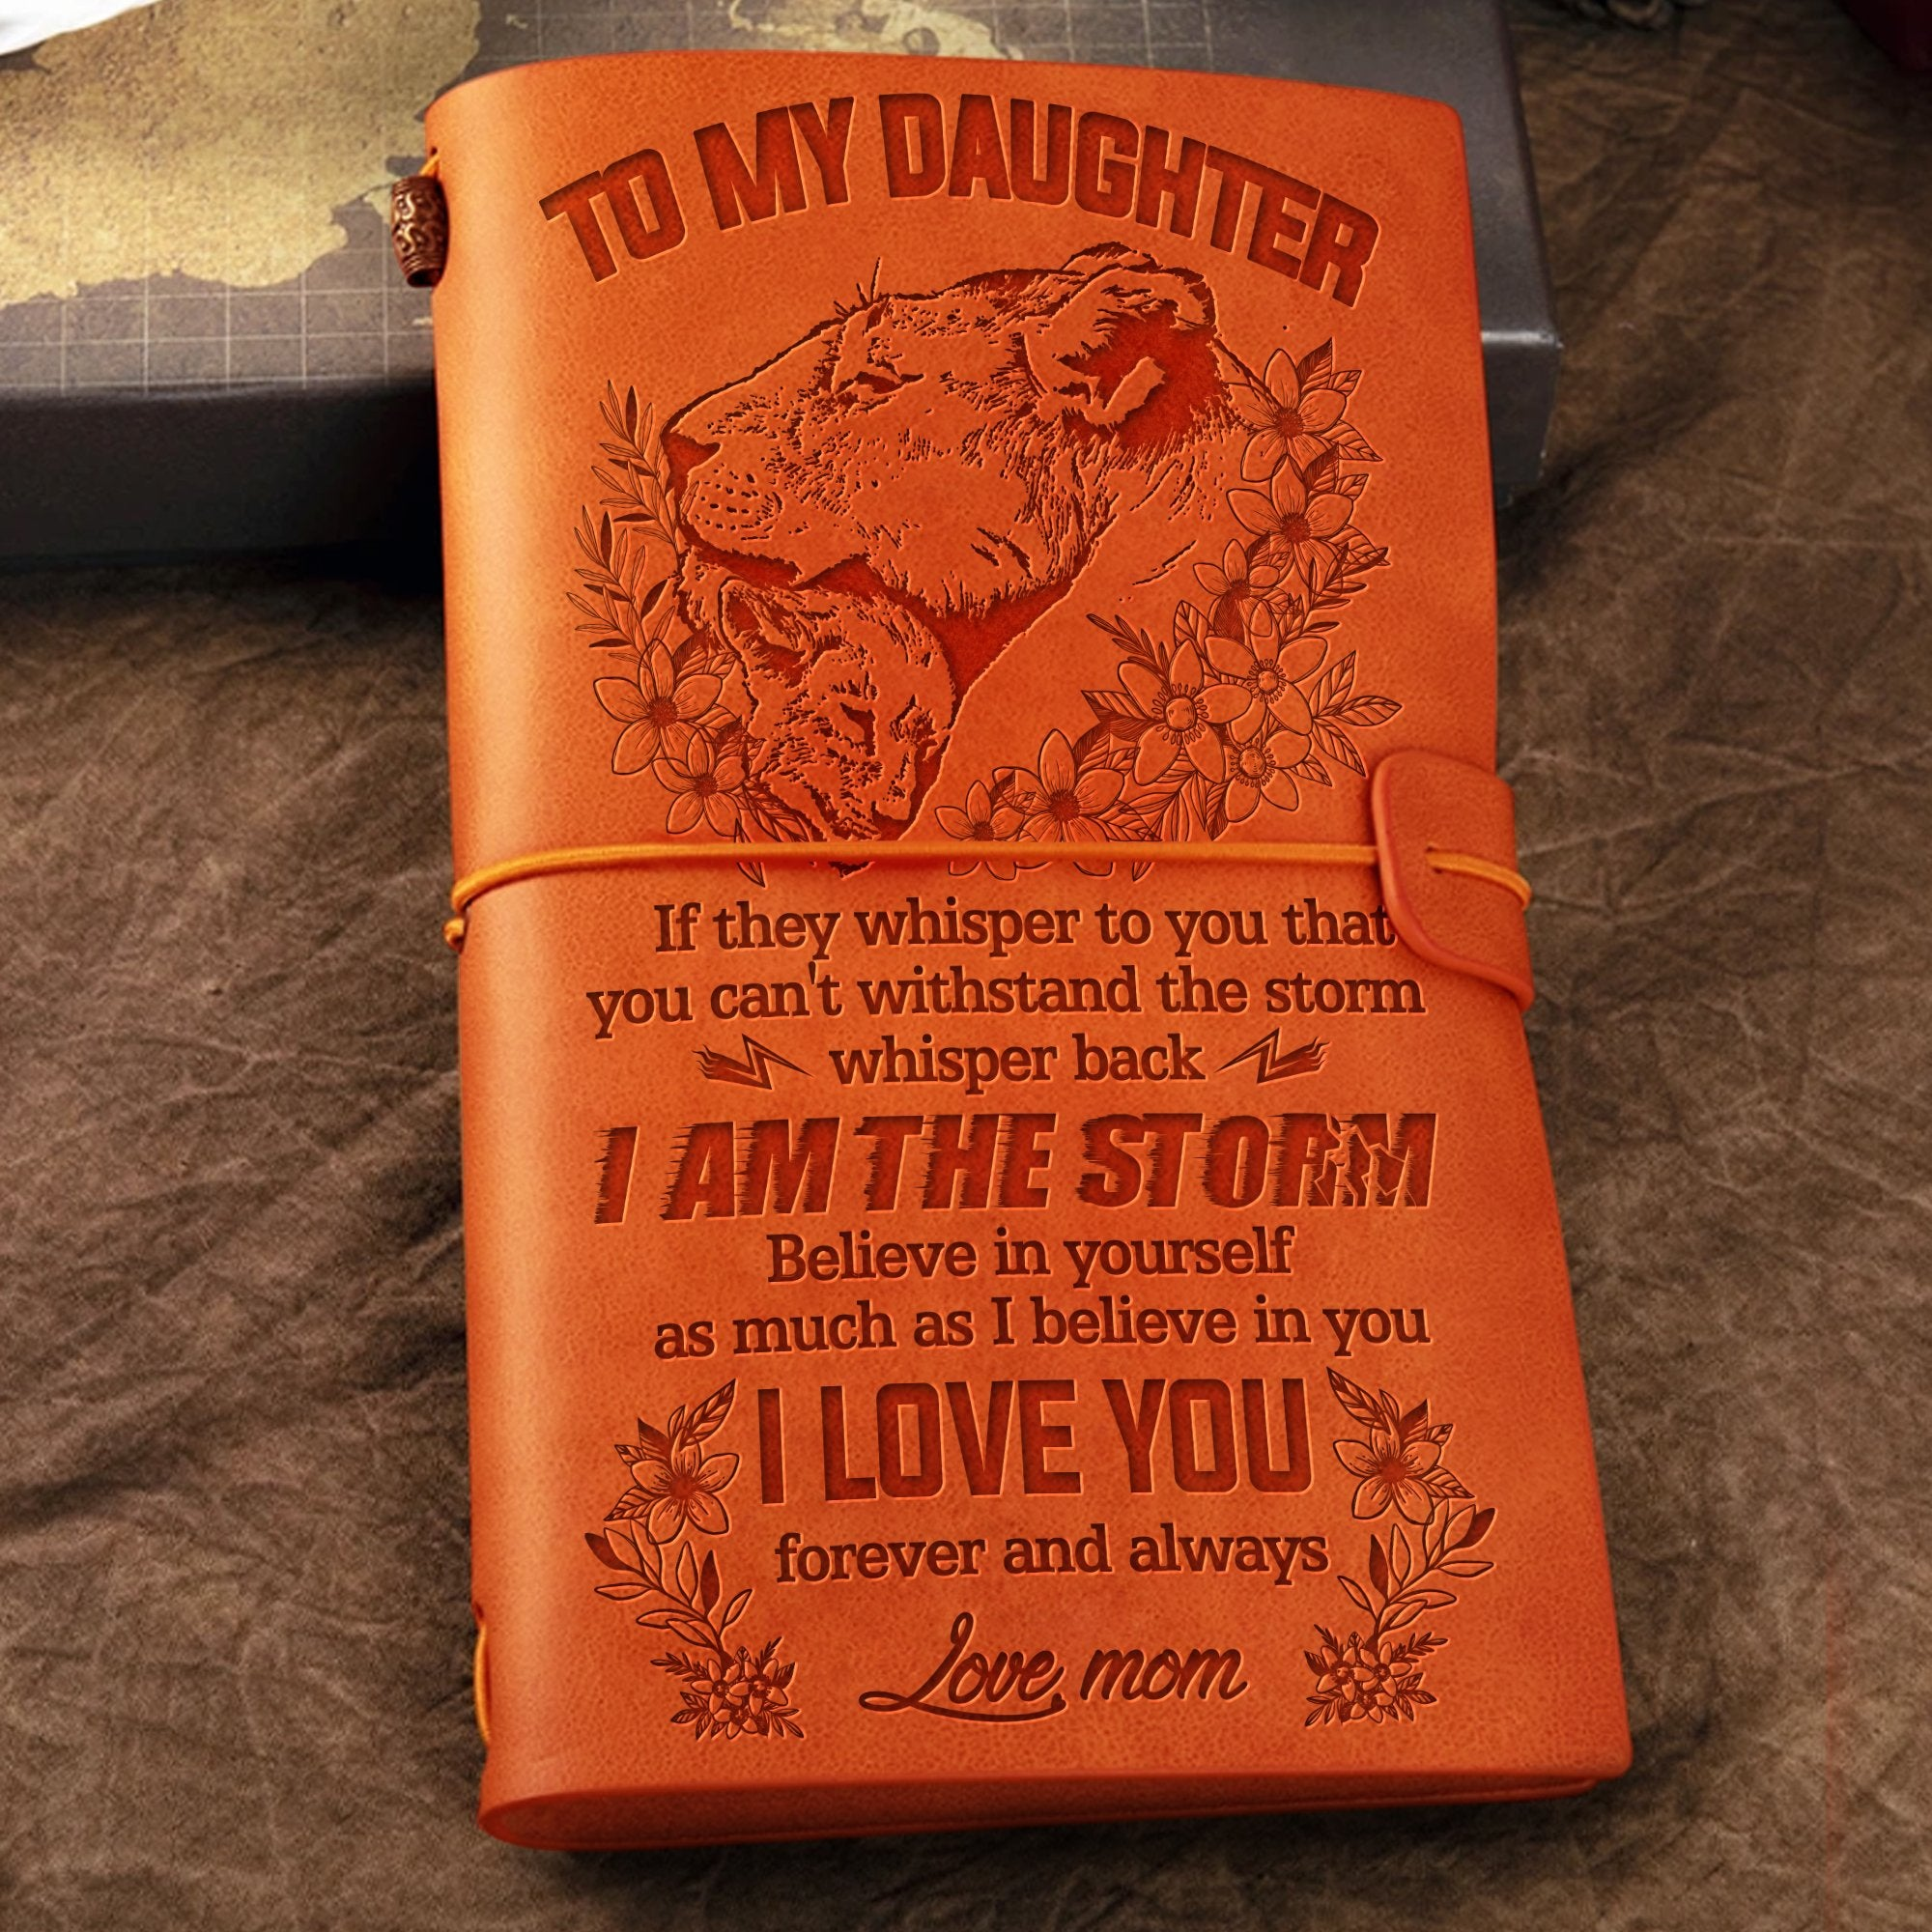 Mom To Daughter - Believe In Yourself As Much As I Believe In You - Vintage Journal